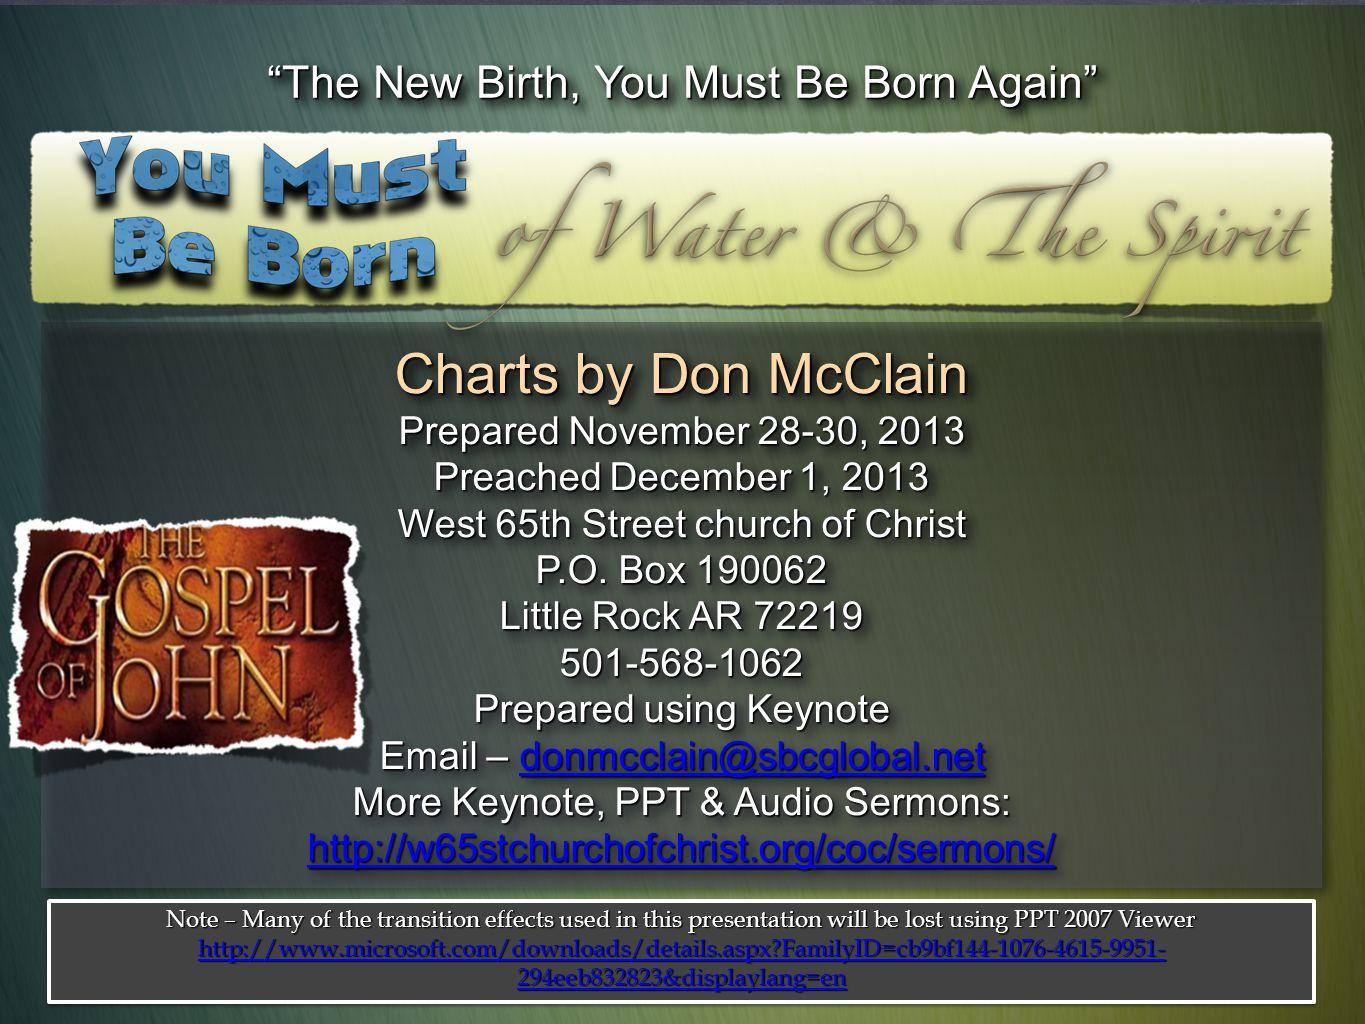 Charts by Don McClain The New Birth, You Must Be Born Again